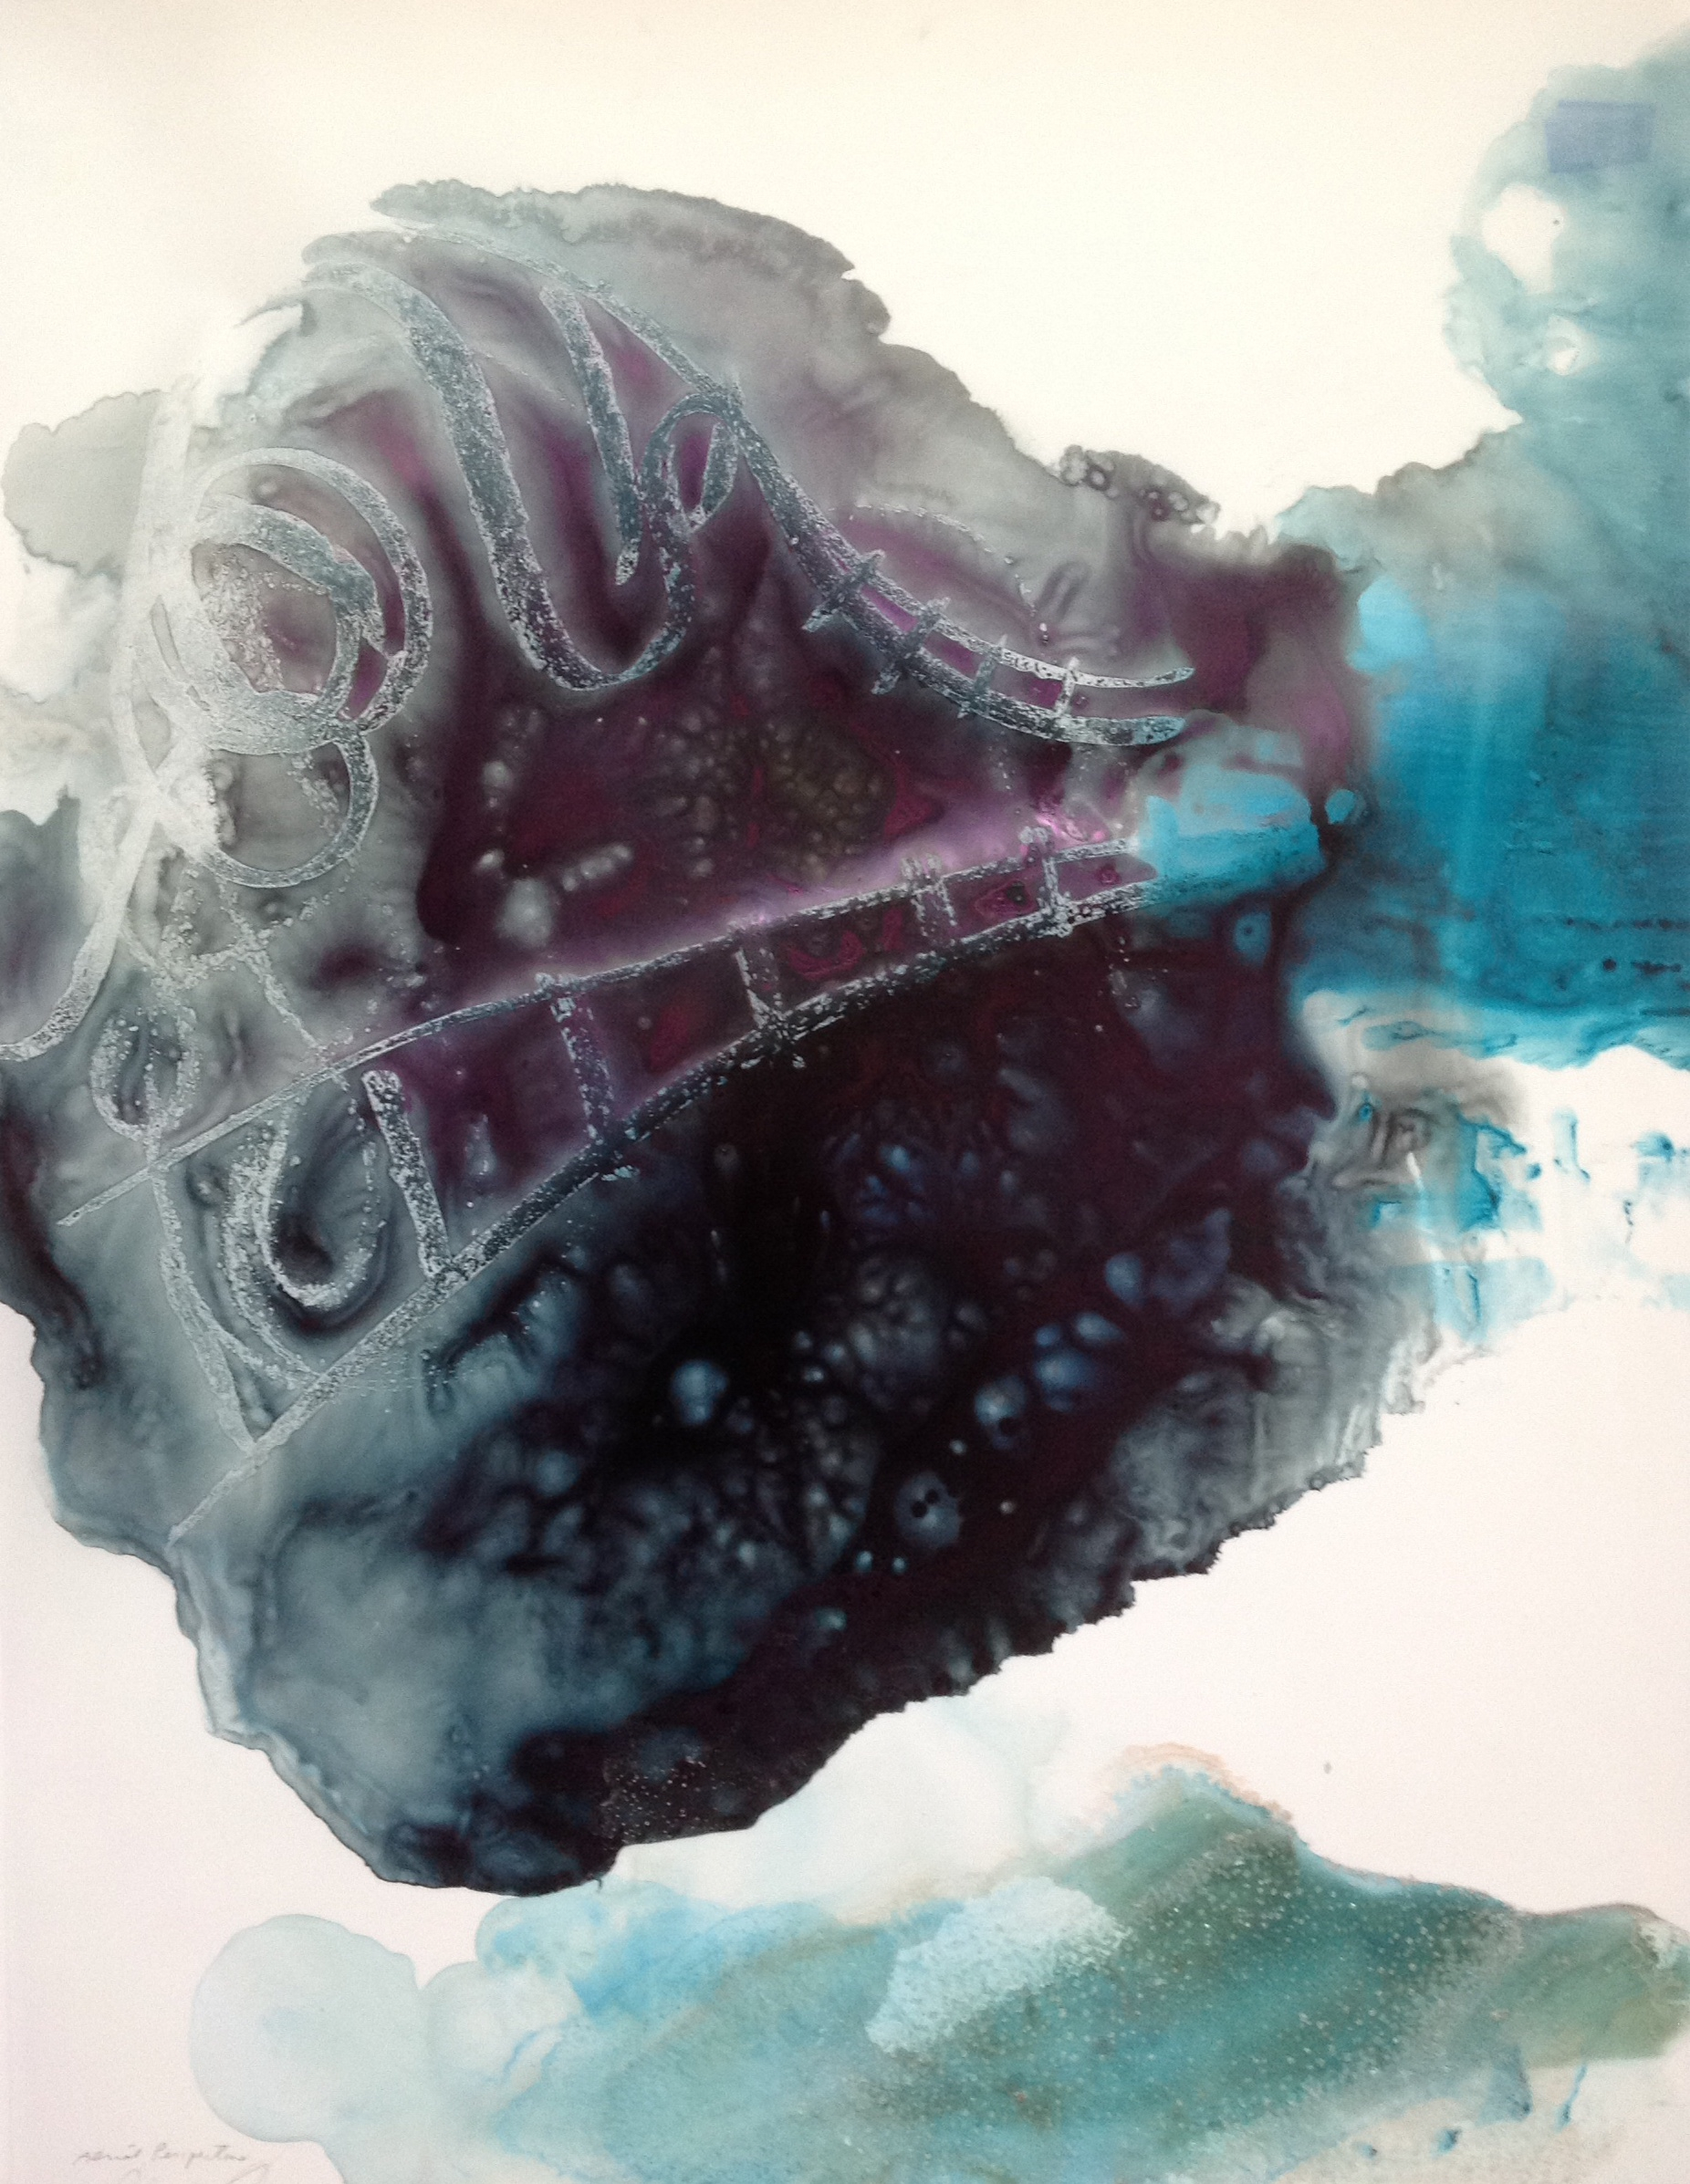 """Amie Oliver ,  Heaven, Earth and Sea Series: Salzburg Clouds, 2014  ink wash and wax on polypropylene paper, 17.5"""" x 12""""      image courtesy of the artist and Global Centre for Drawing, Melbourne, Australia"""